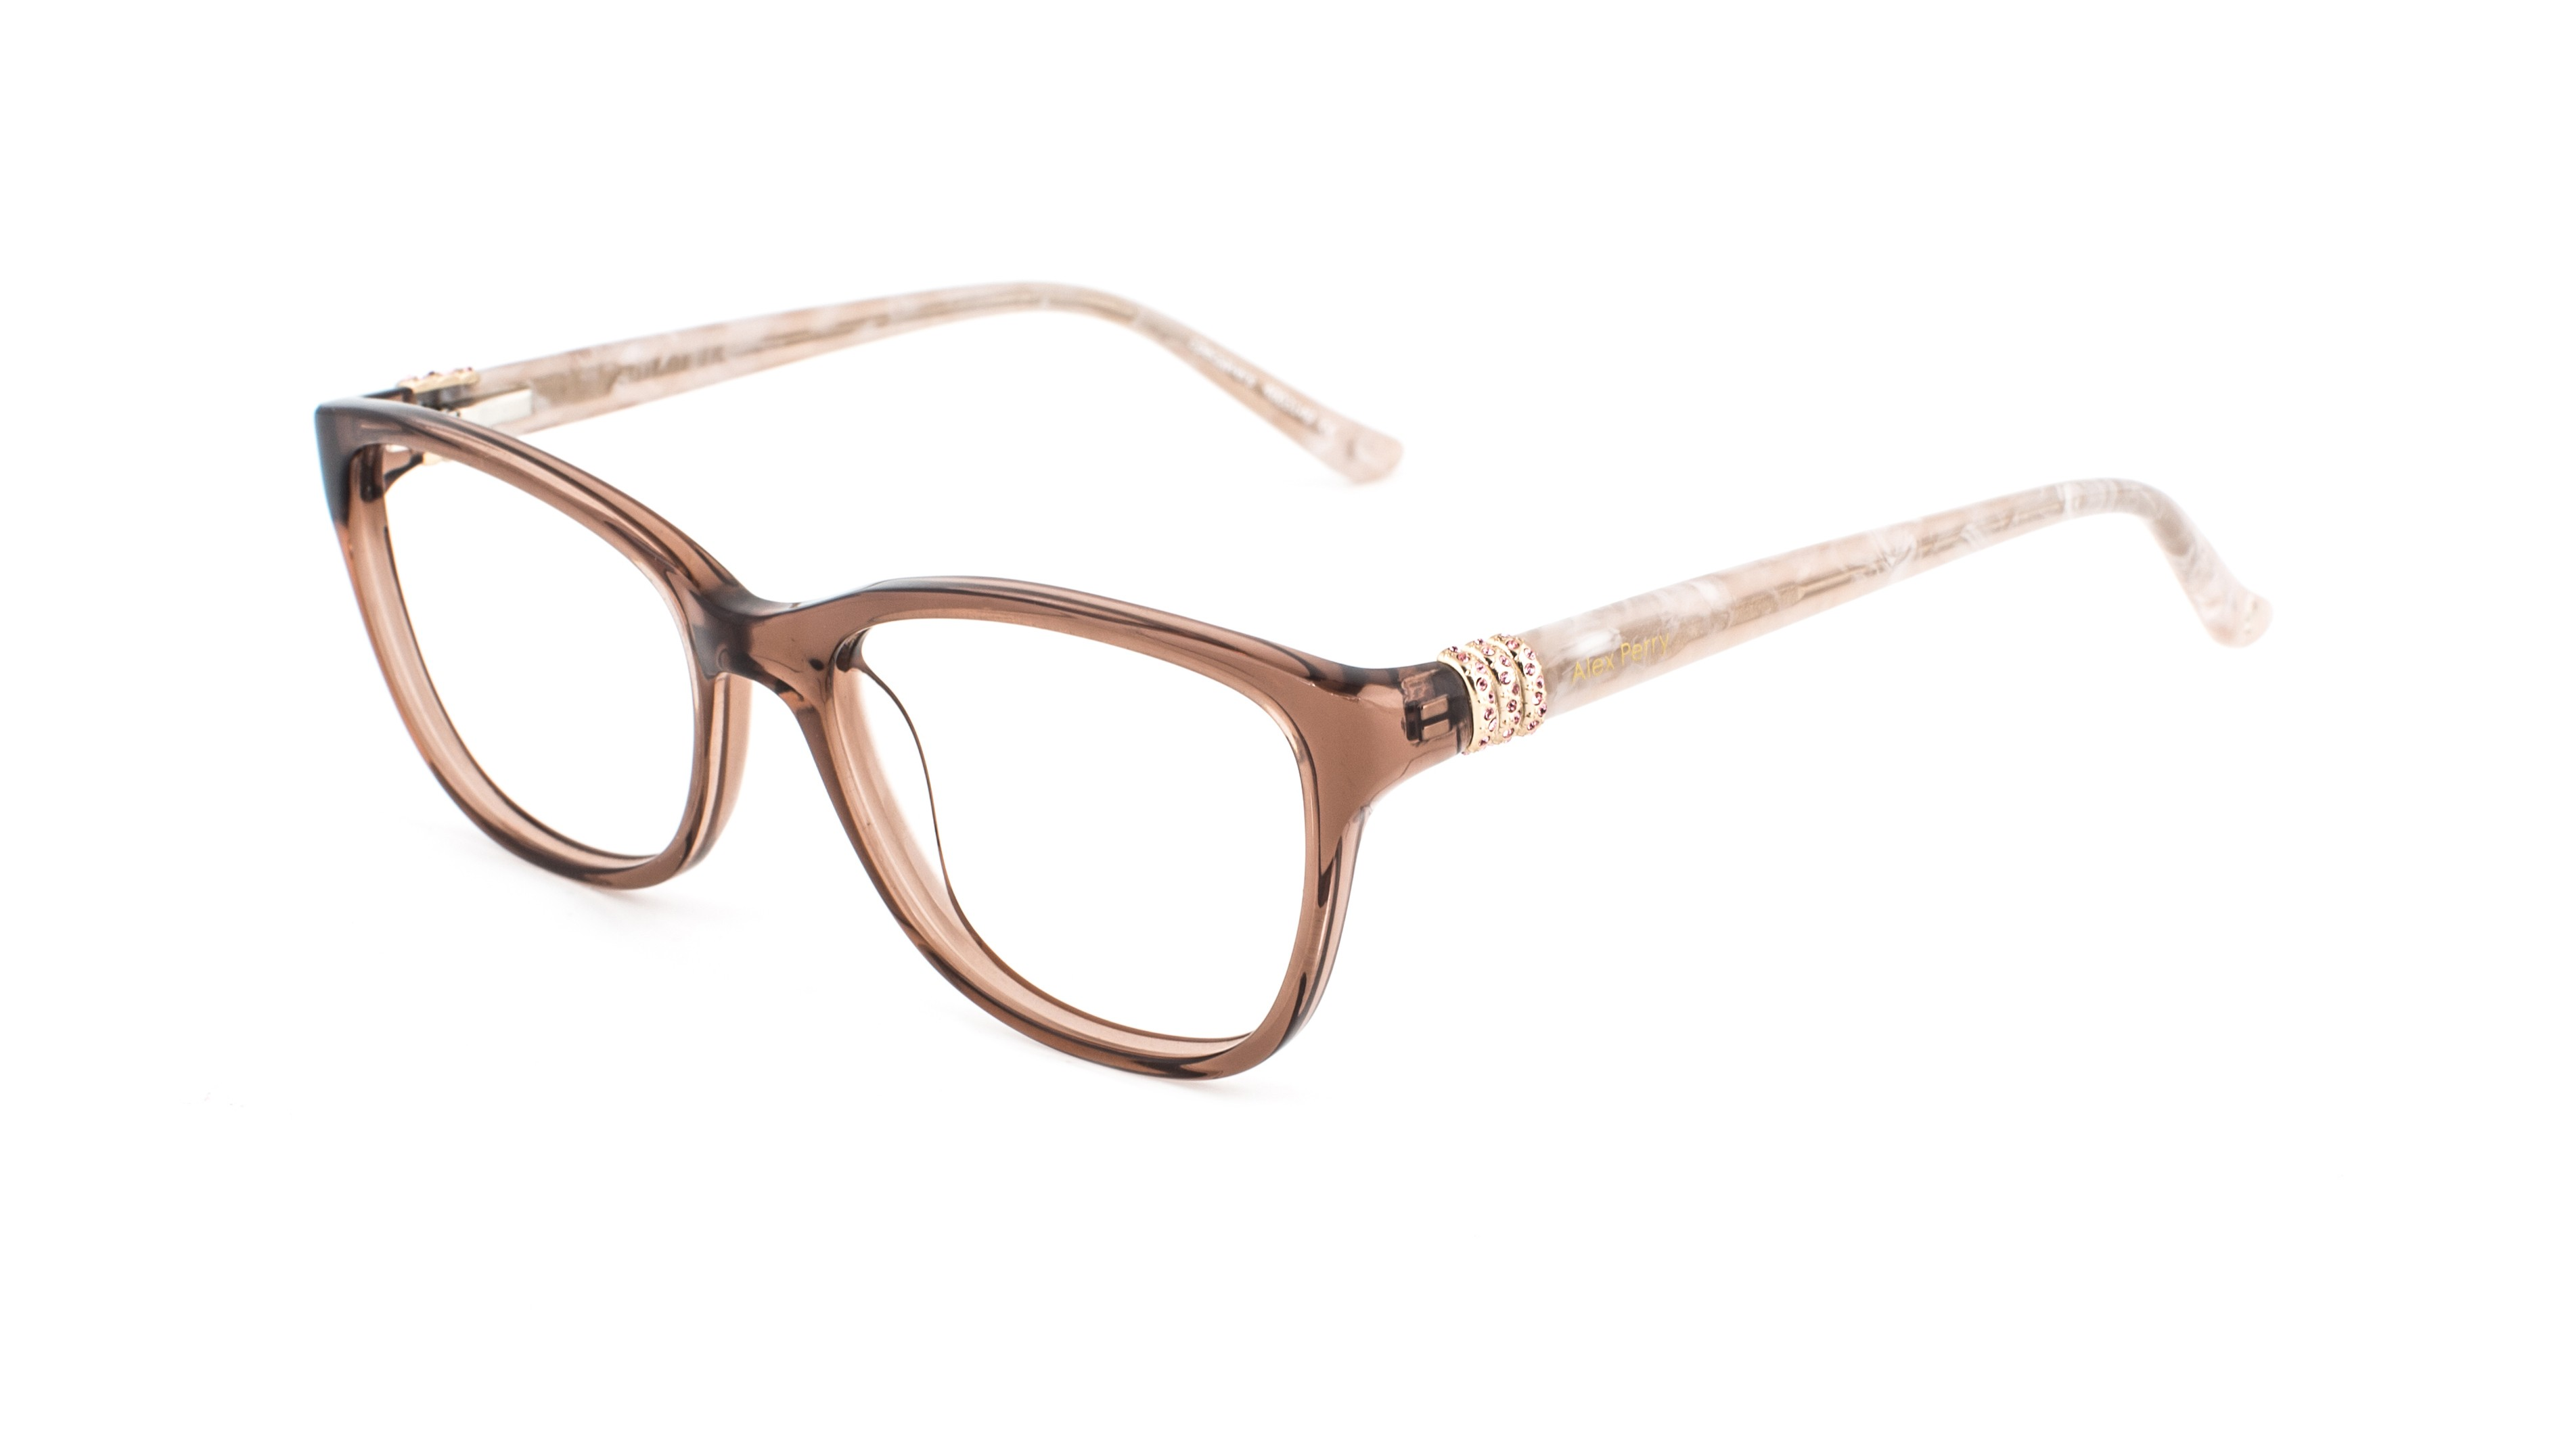 Eyeglasses Frame Latest Style : Frame Of Mind - The Specsavers Eyewear Trends of 2015 ...